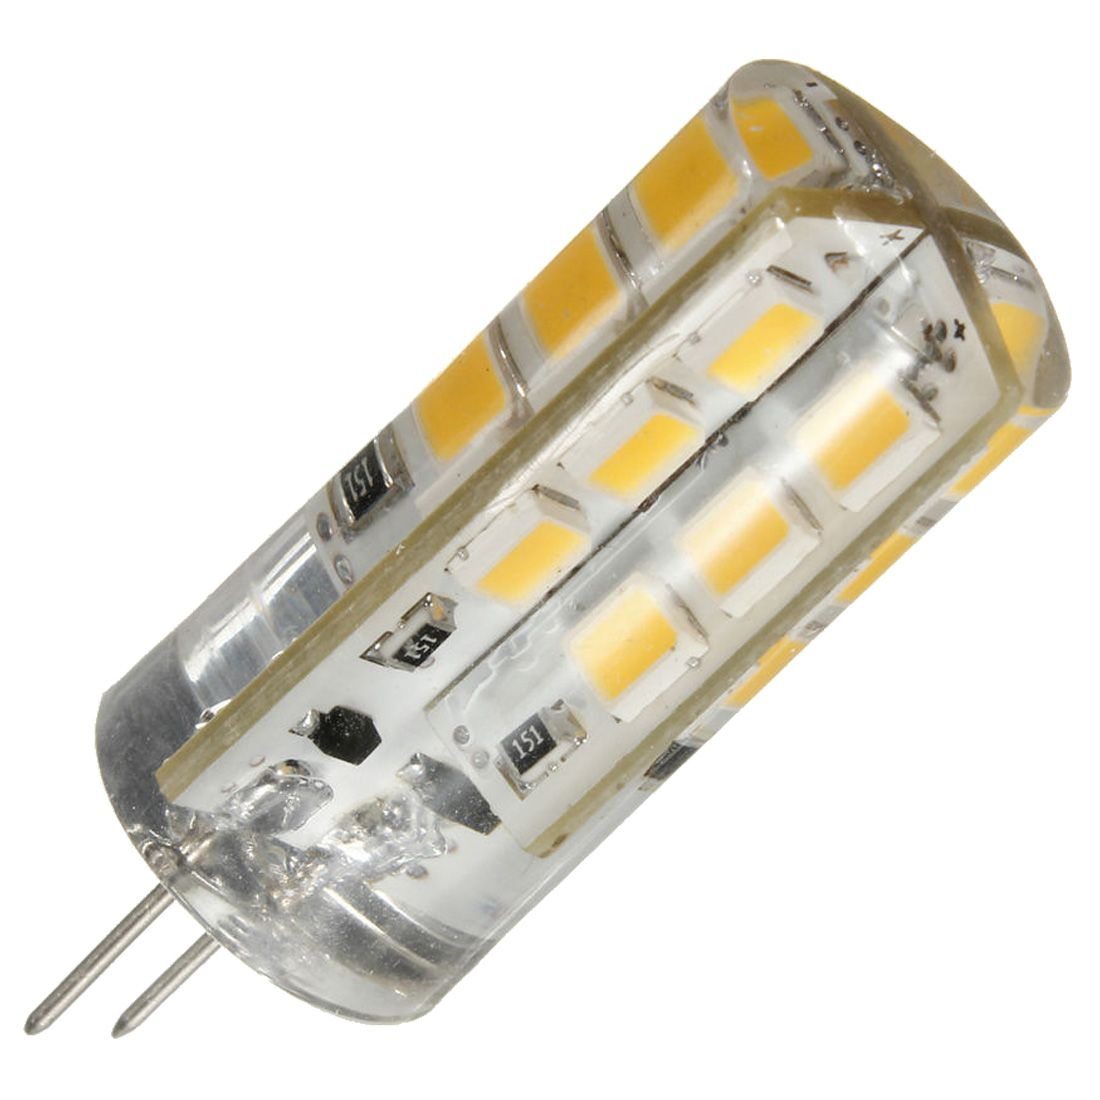 1 Pcs G4 3w 2835smd 24 Led Light Silicone Capsule Replace Halogen Bulb Light 12v Warm White Light Affiliate Halogen Bulbs Light Bulb Led Lights